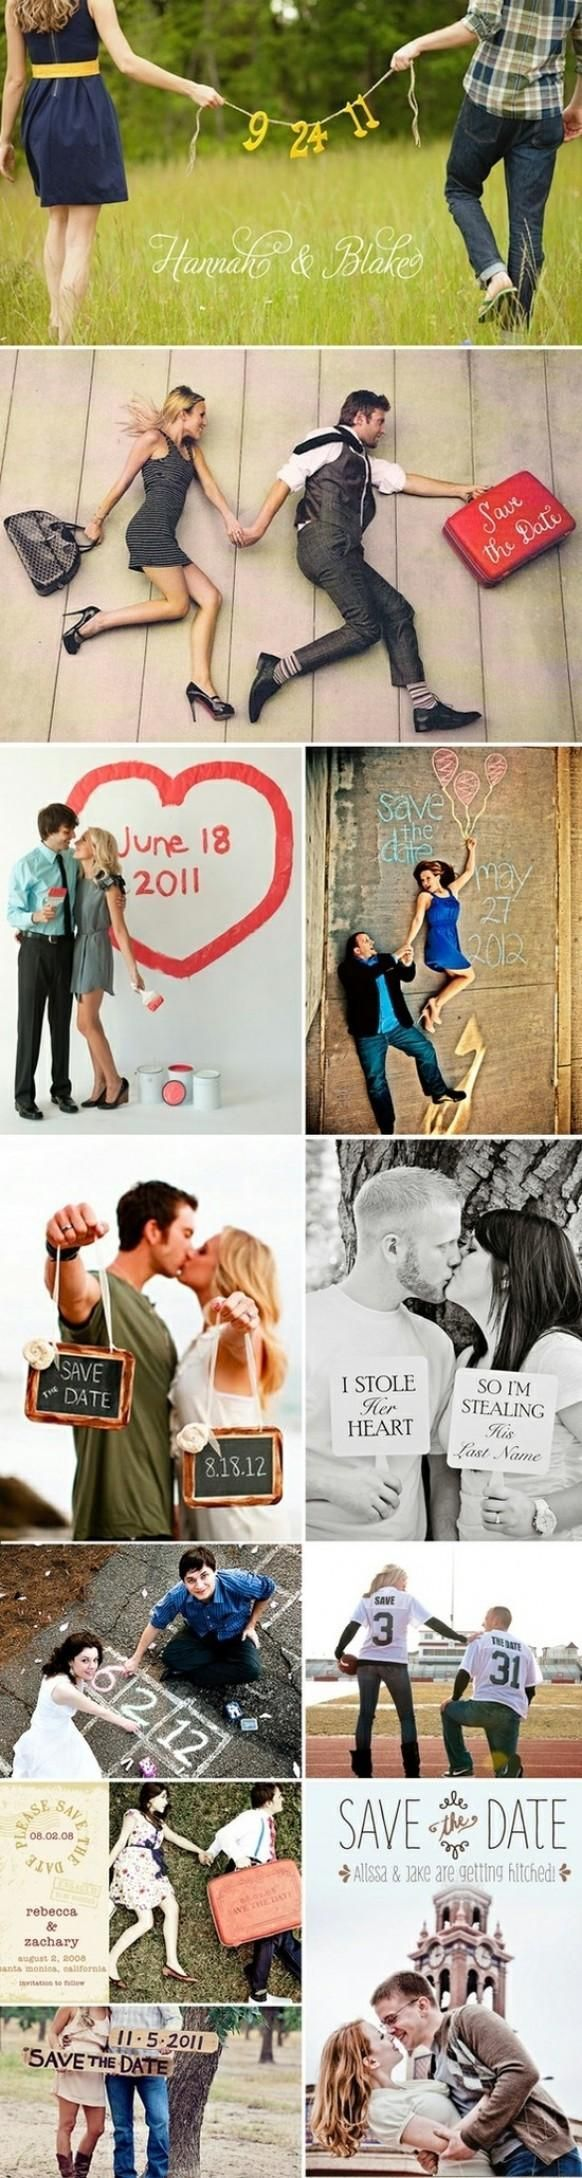 Save The Date Ideas  Wedding Photography Ideas #1919845 - Weddbook these are cute @Tiffany Roberts